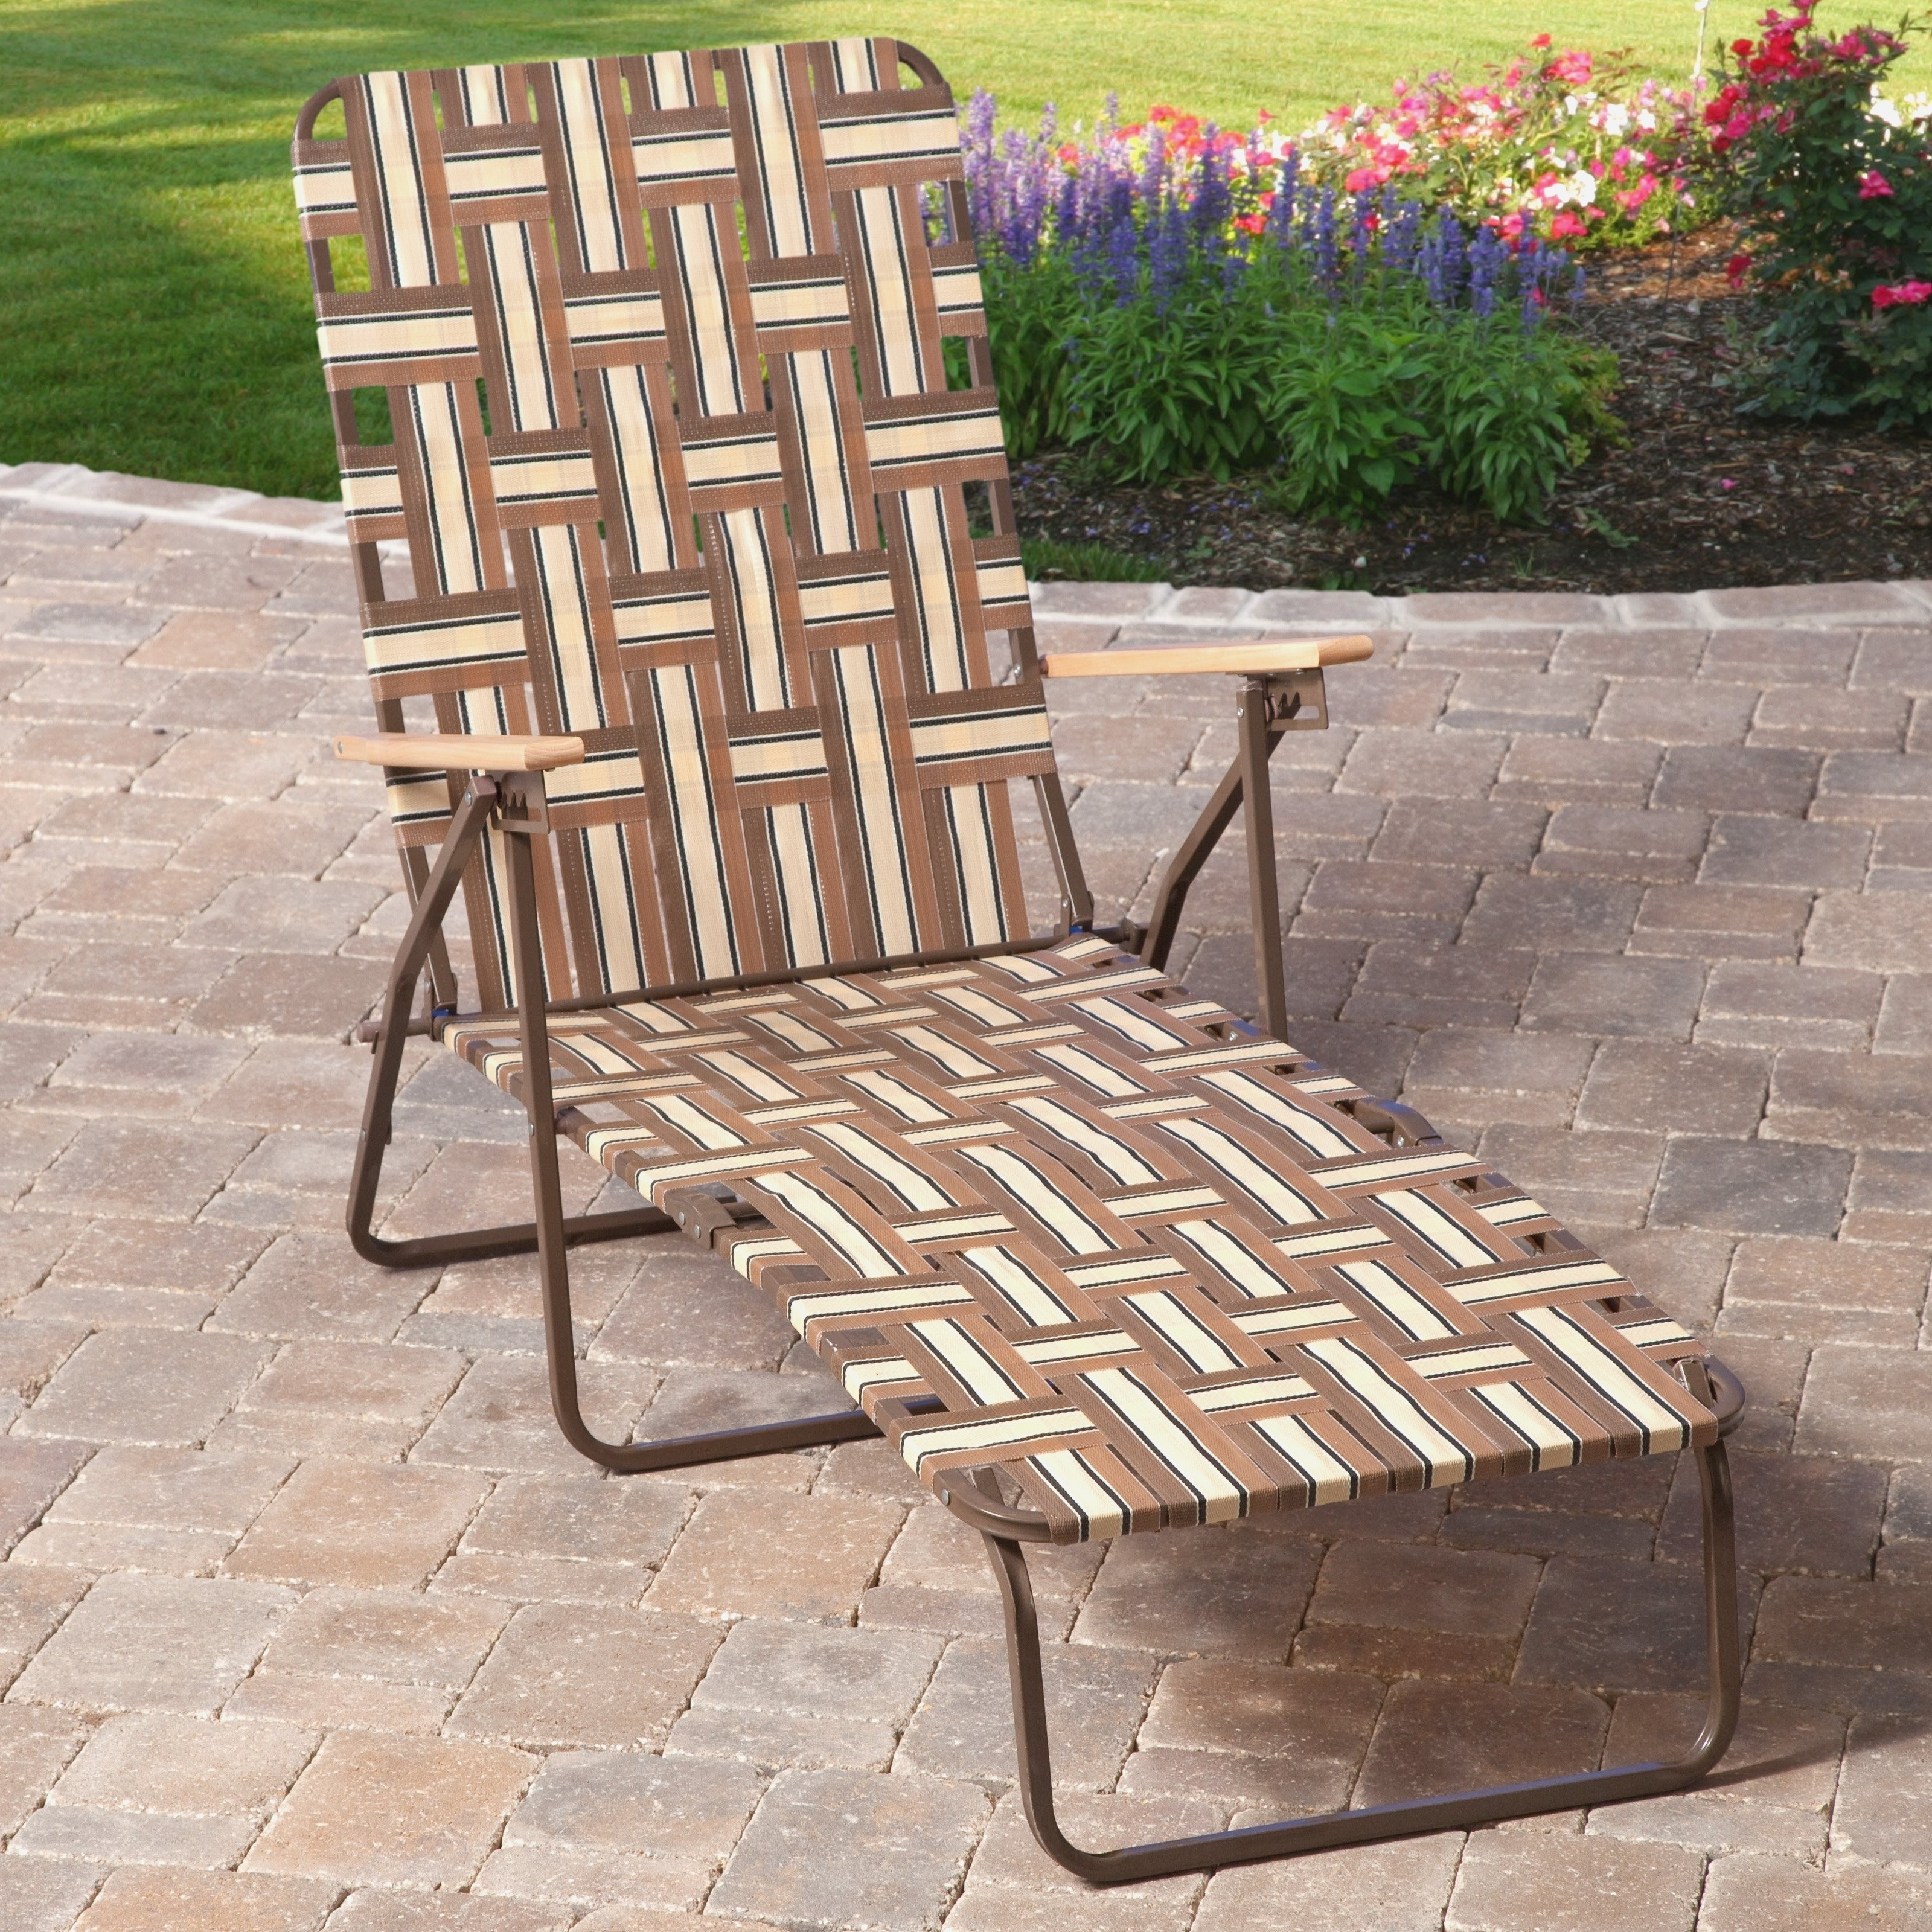 2018 Atlanta Chaise Lounge Chairs Throughout Restrapping Patio Chairs Beautiful Vinyl Restrapping Your Atlanta (View 1 of 15)